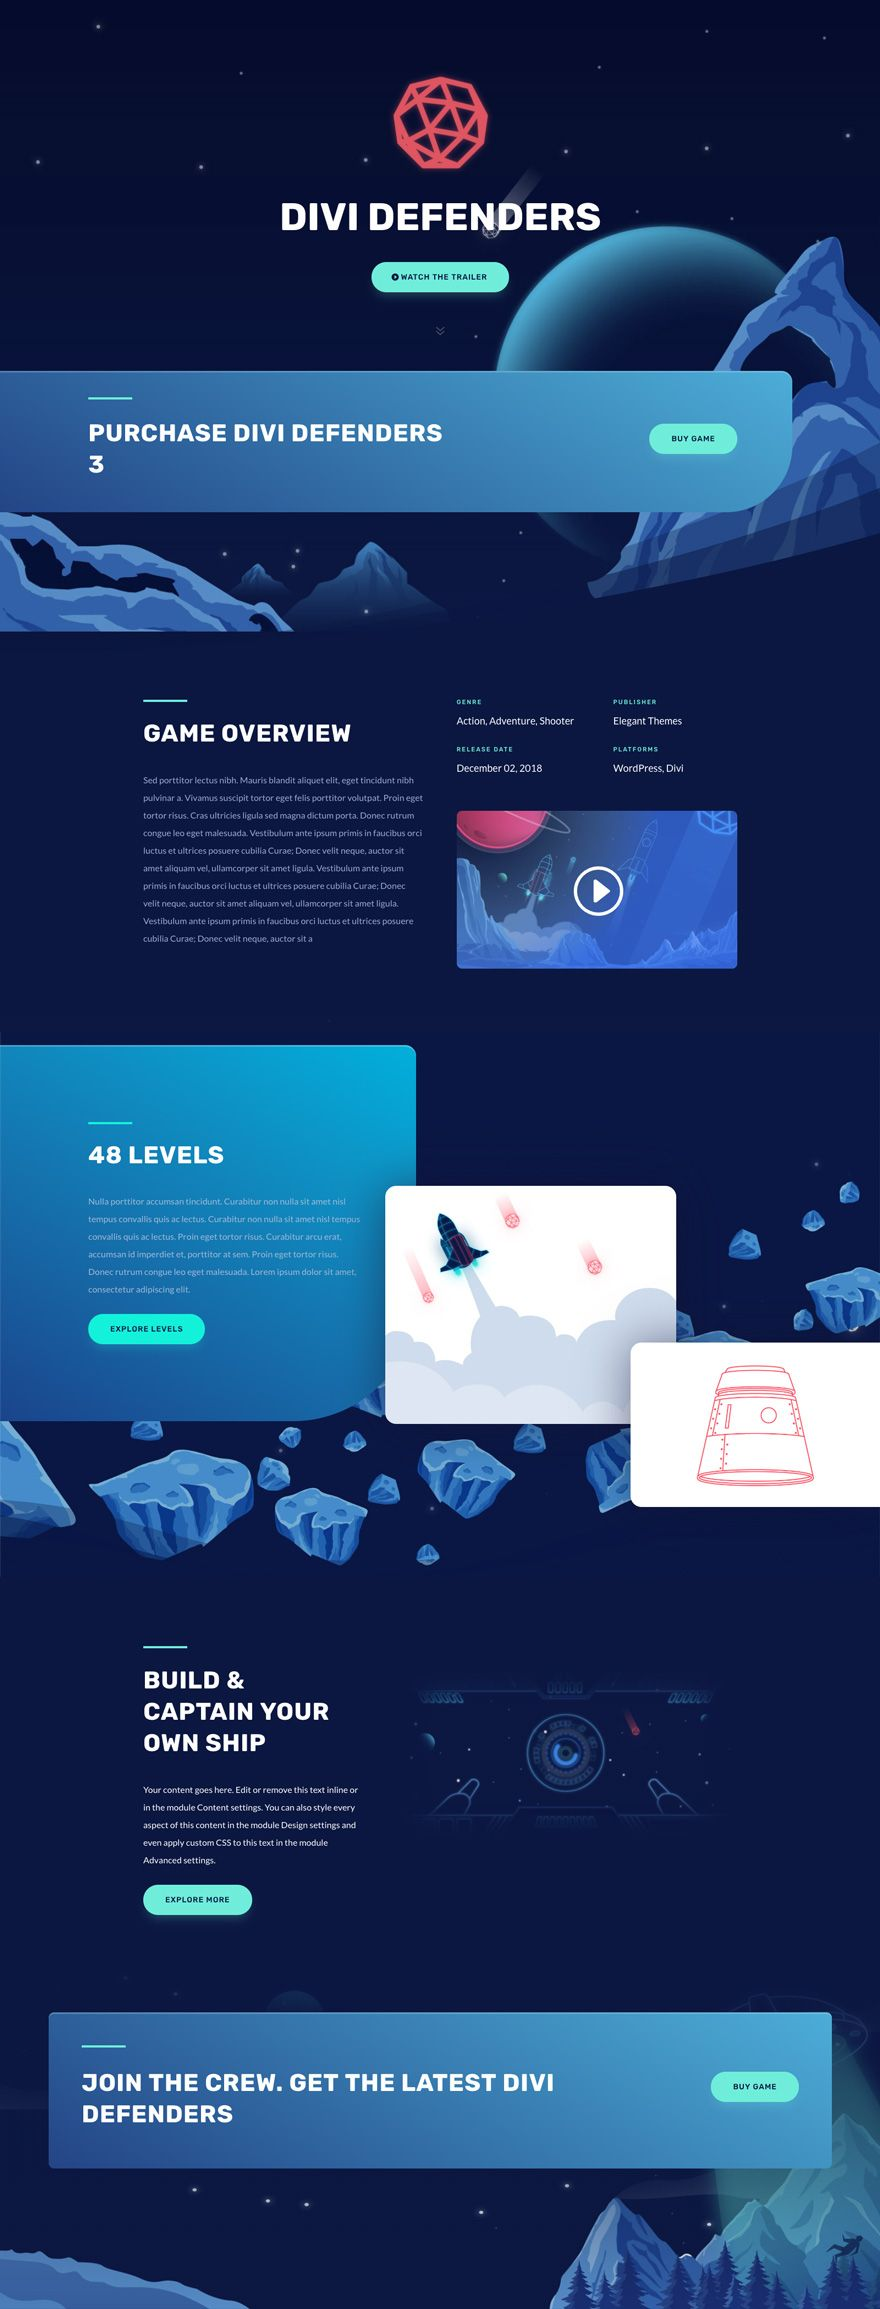 [click to see other pages] The Video Game Layout Pack is ready to take your gaming website to the next level. It includes amazing illustrations, a dark color palette and some of Divi's finest design combinations. In other words; this layout pack will undeniably do justice to any website you decide to create. Creative Bright Gradient One Page Web Design Inspiration | Free Layout for Video Game Website Wordpress WP Template  #webdesign #layout #website #ui #websitedesign #wordpress #wordpresstheme